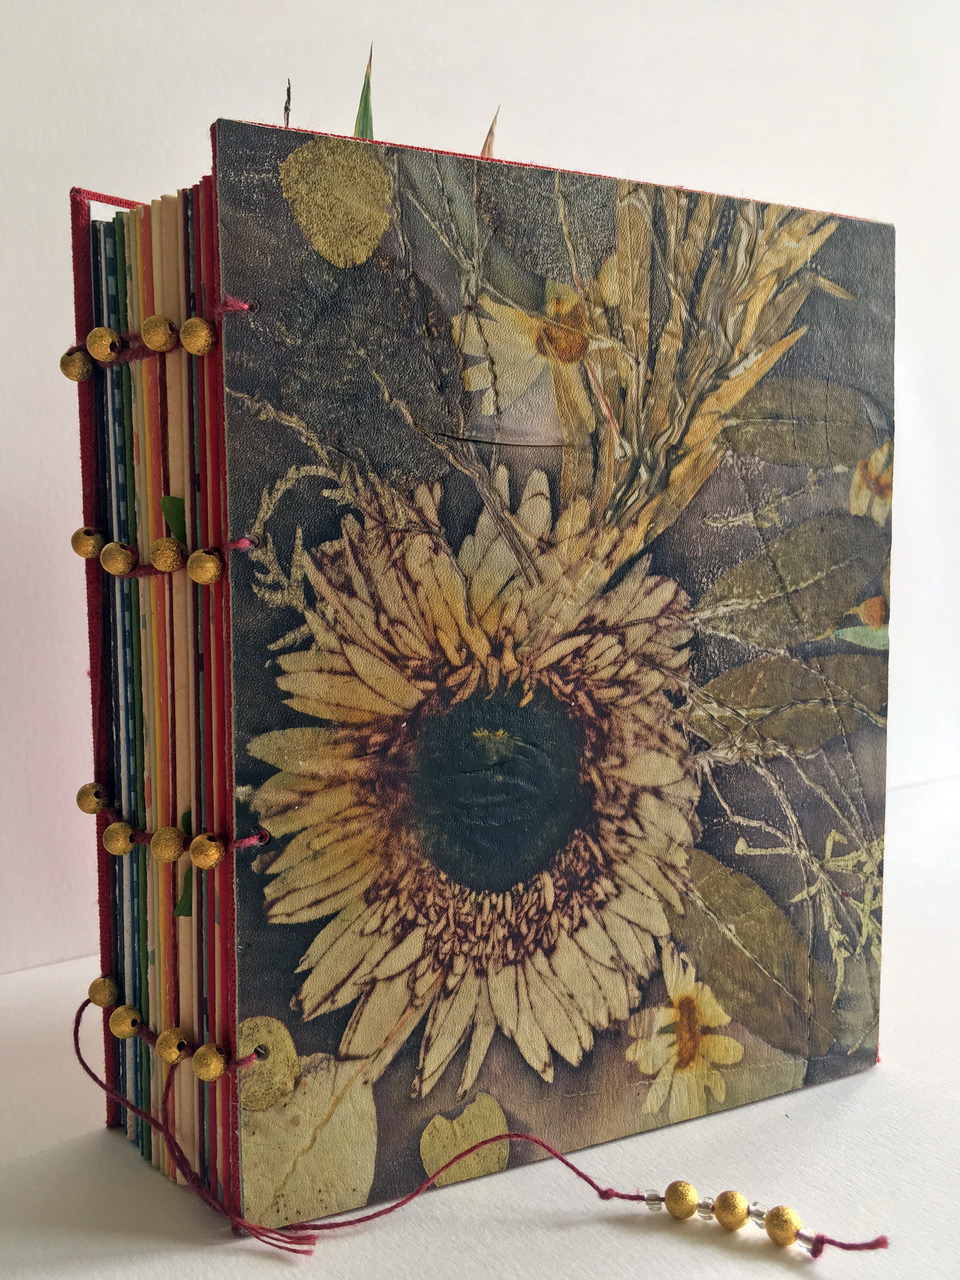 © 2019 Merike van Zanten. Gerbera Daisy, coptic bound notebook with eco printed leather cover from Merike's residency,